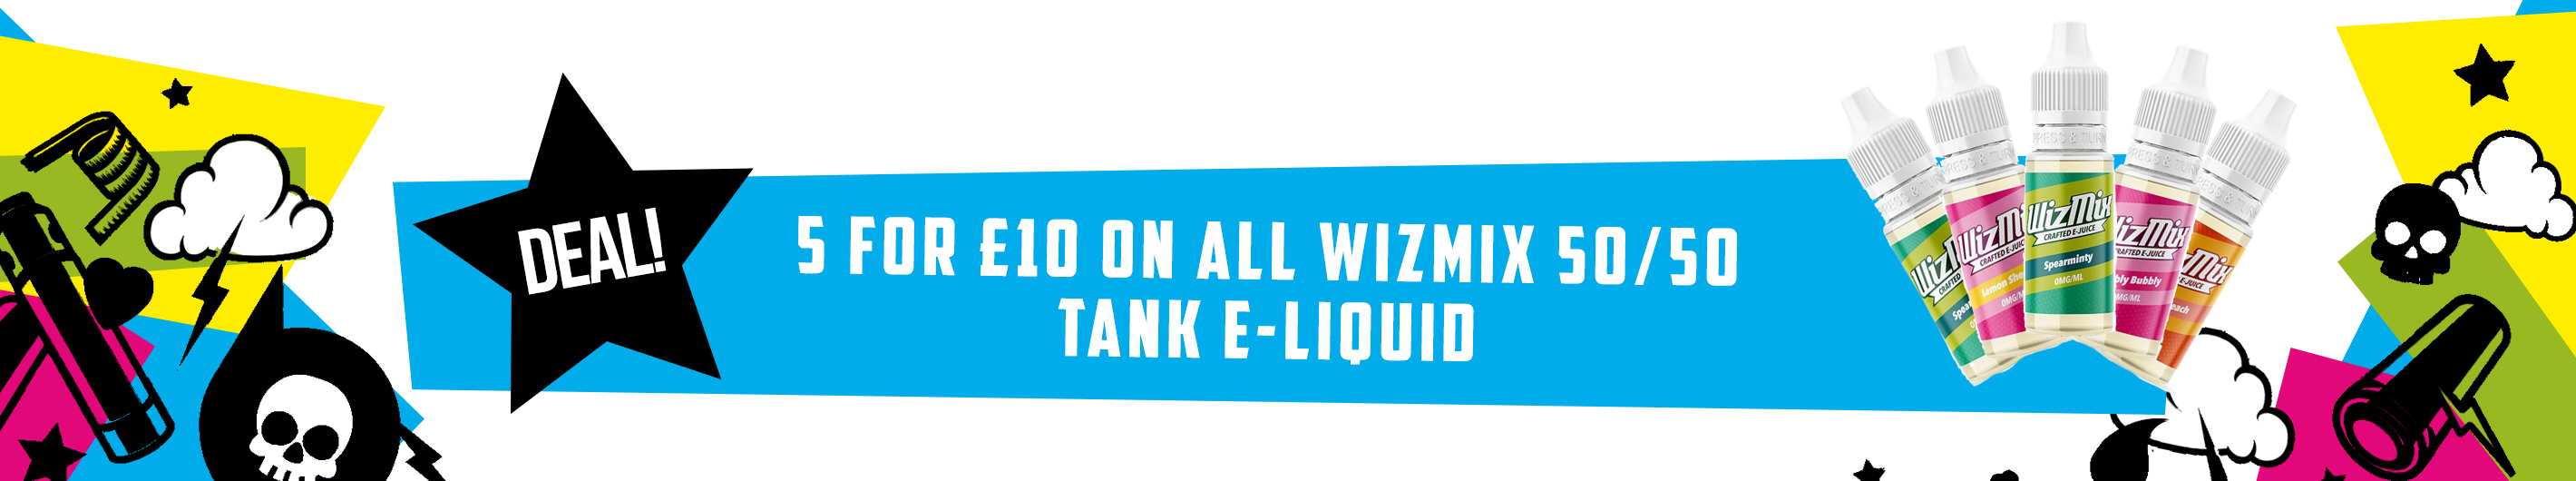 Wizmix 10ml - 5 for £10